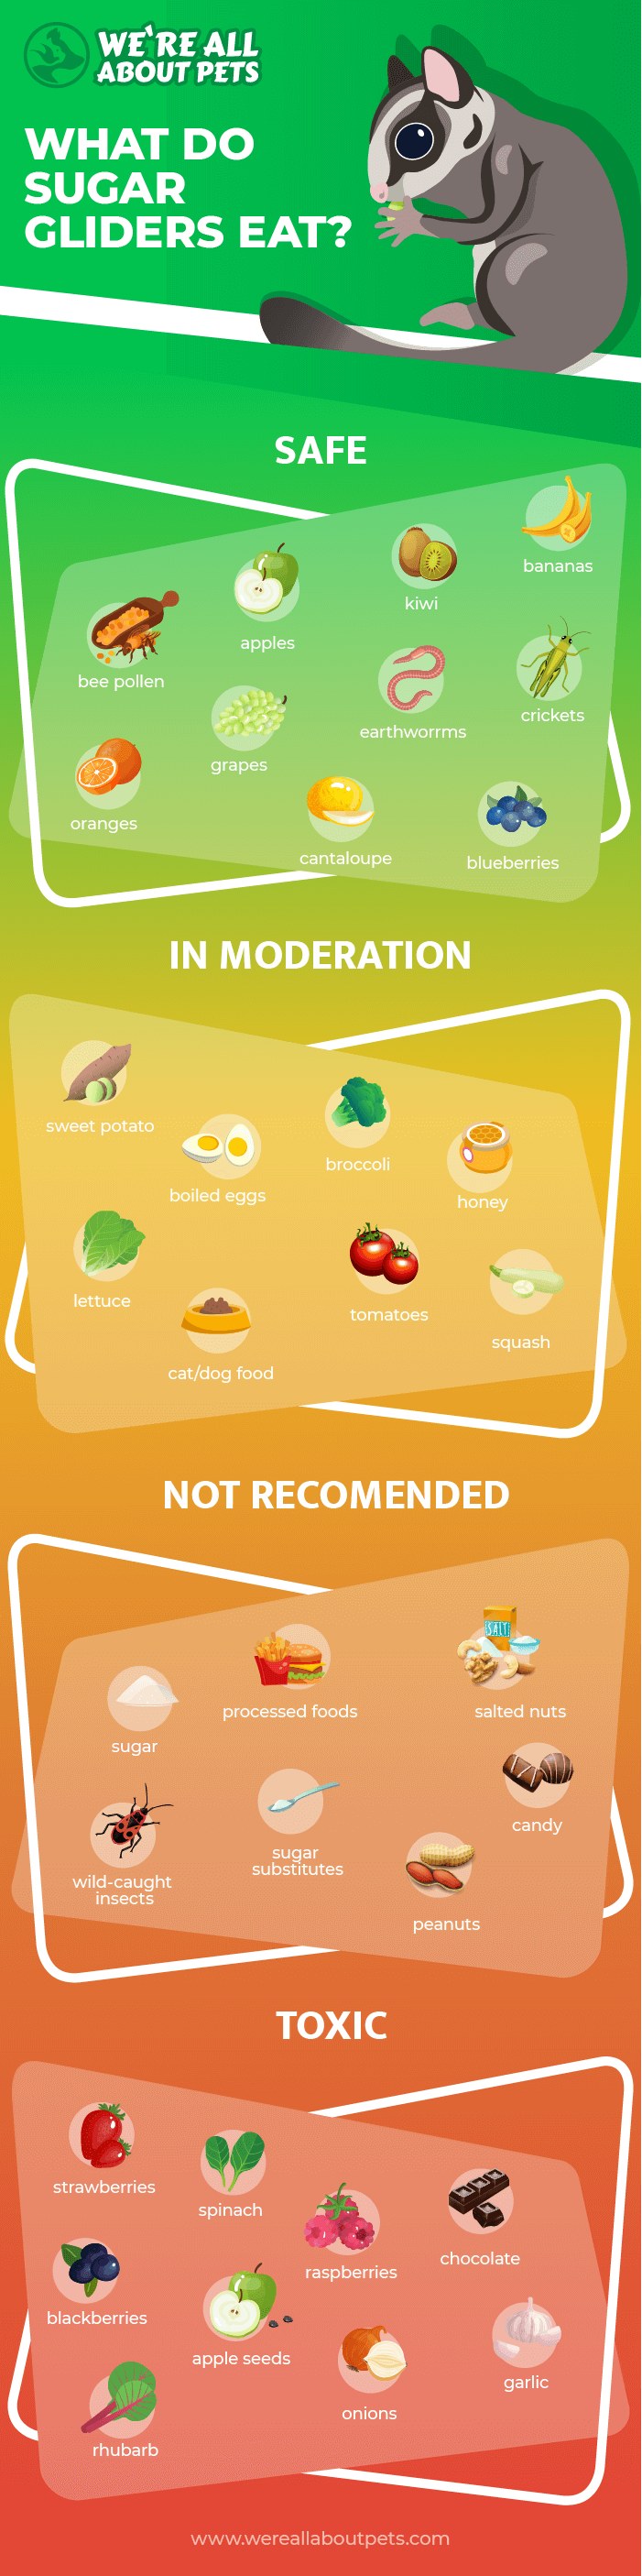 what do sglider eat info